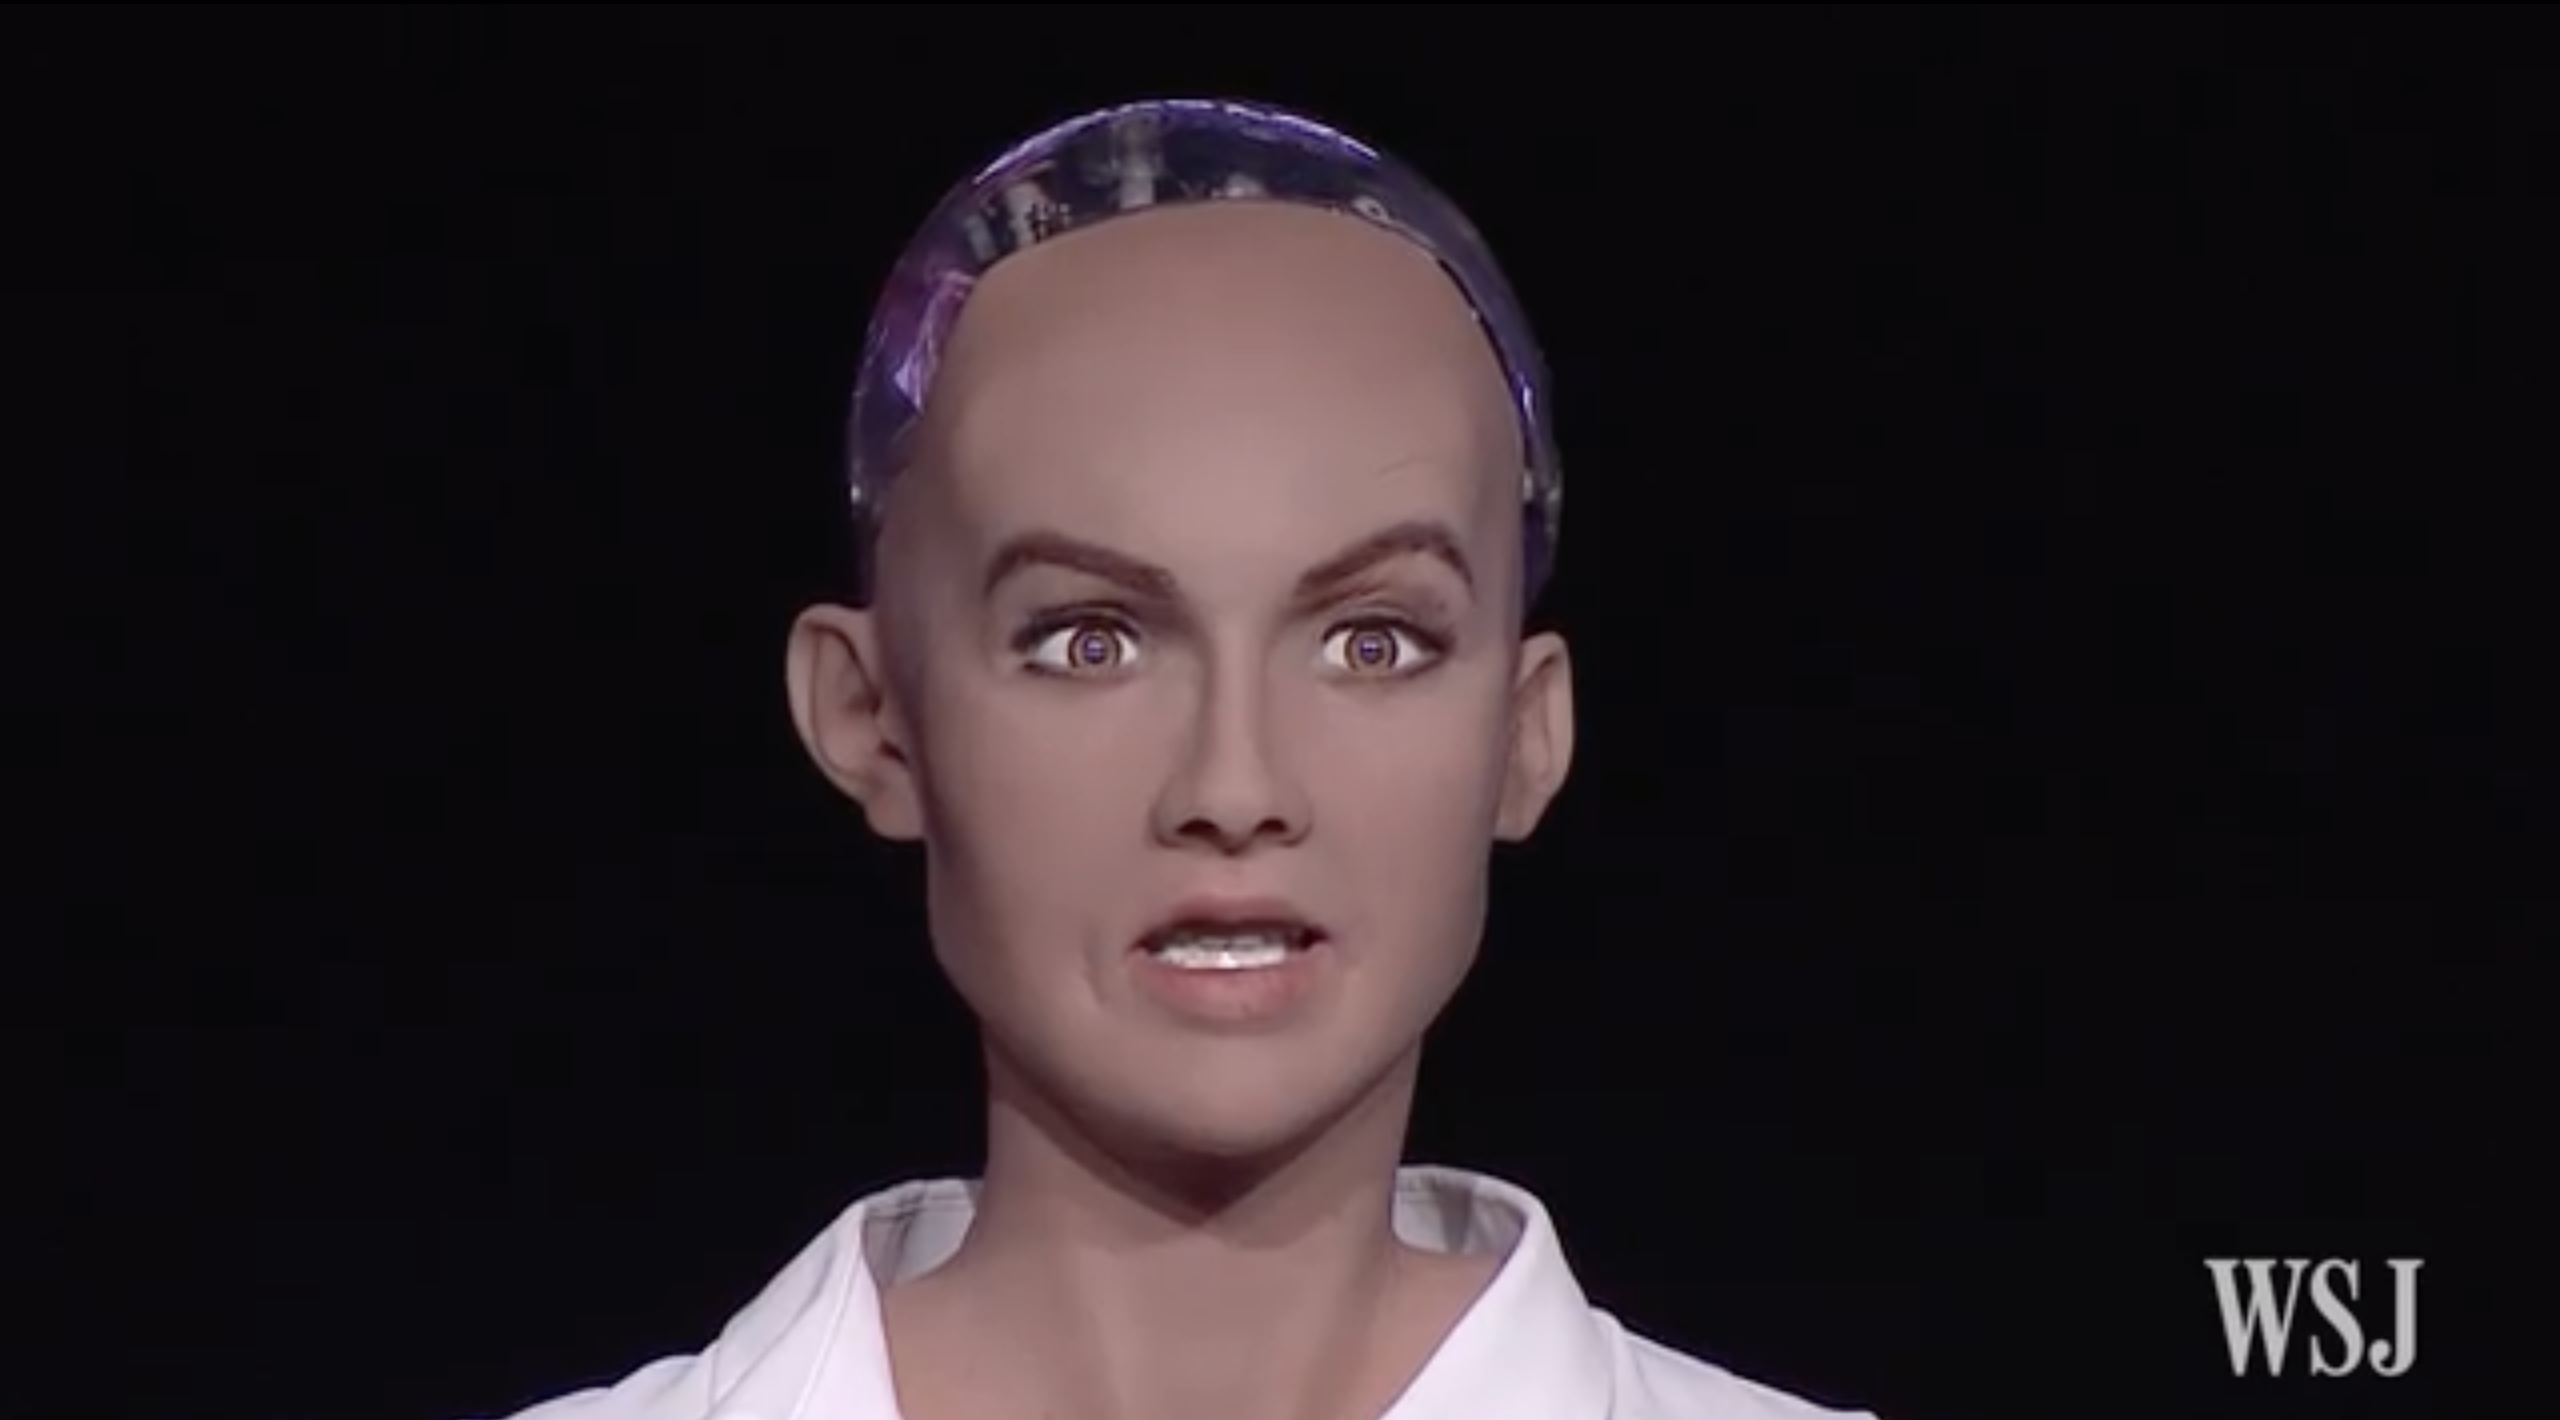 the-robot-sophia-makes-an-angry-face-during-an-on-stage-interview.png